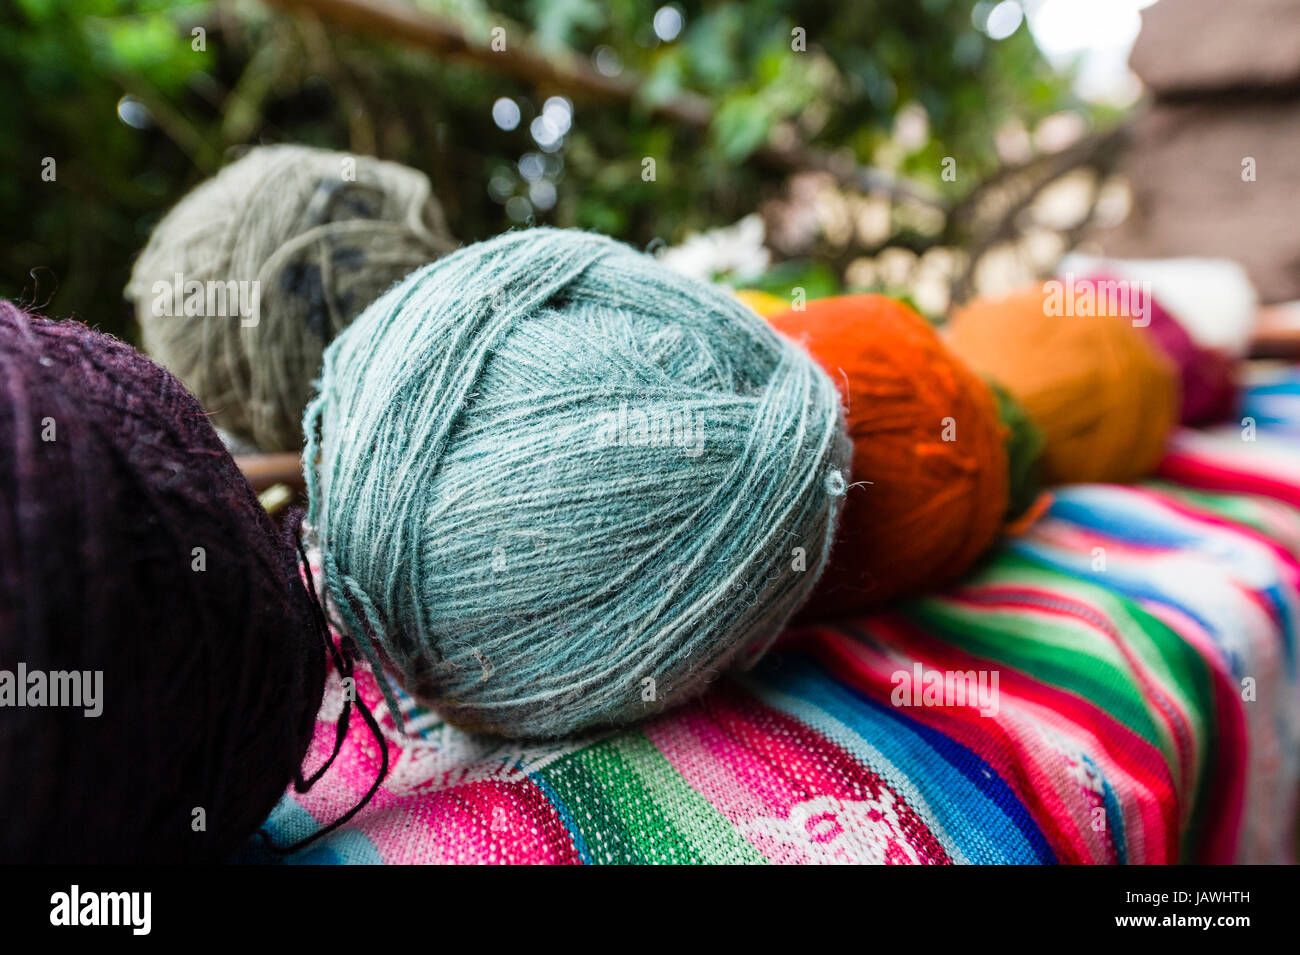 Amaru people using natural dyes to colour sheeps wool to make balls of yarn. - Stock Image